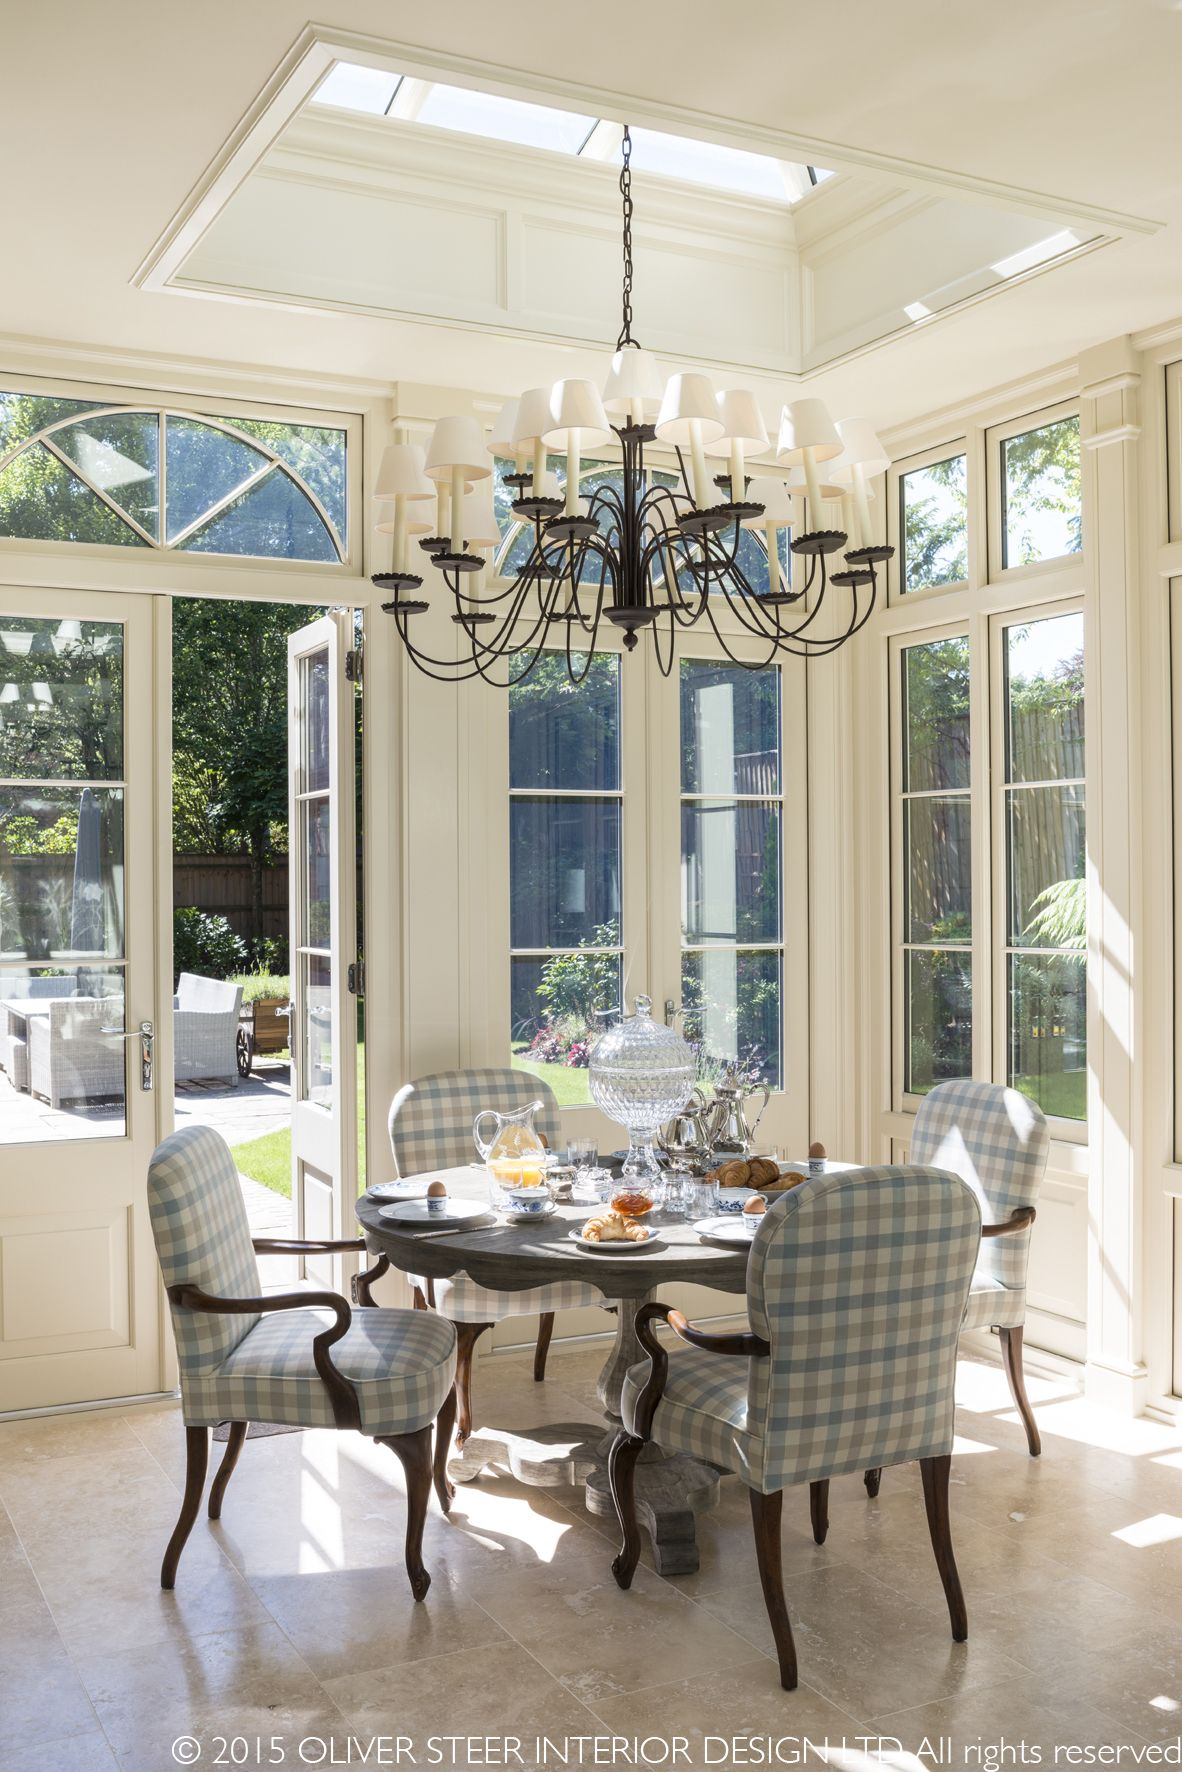 Conservatory Room Addition In The Uk 1040x1485 In 2020: Quiet Lunch In The Sunshine, Designed And Decorated By Oliver Steer